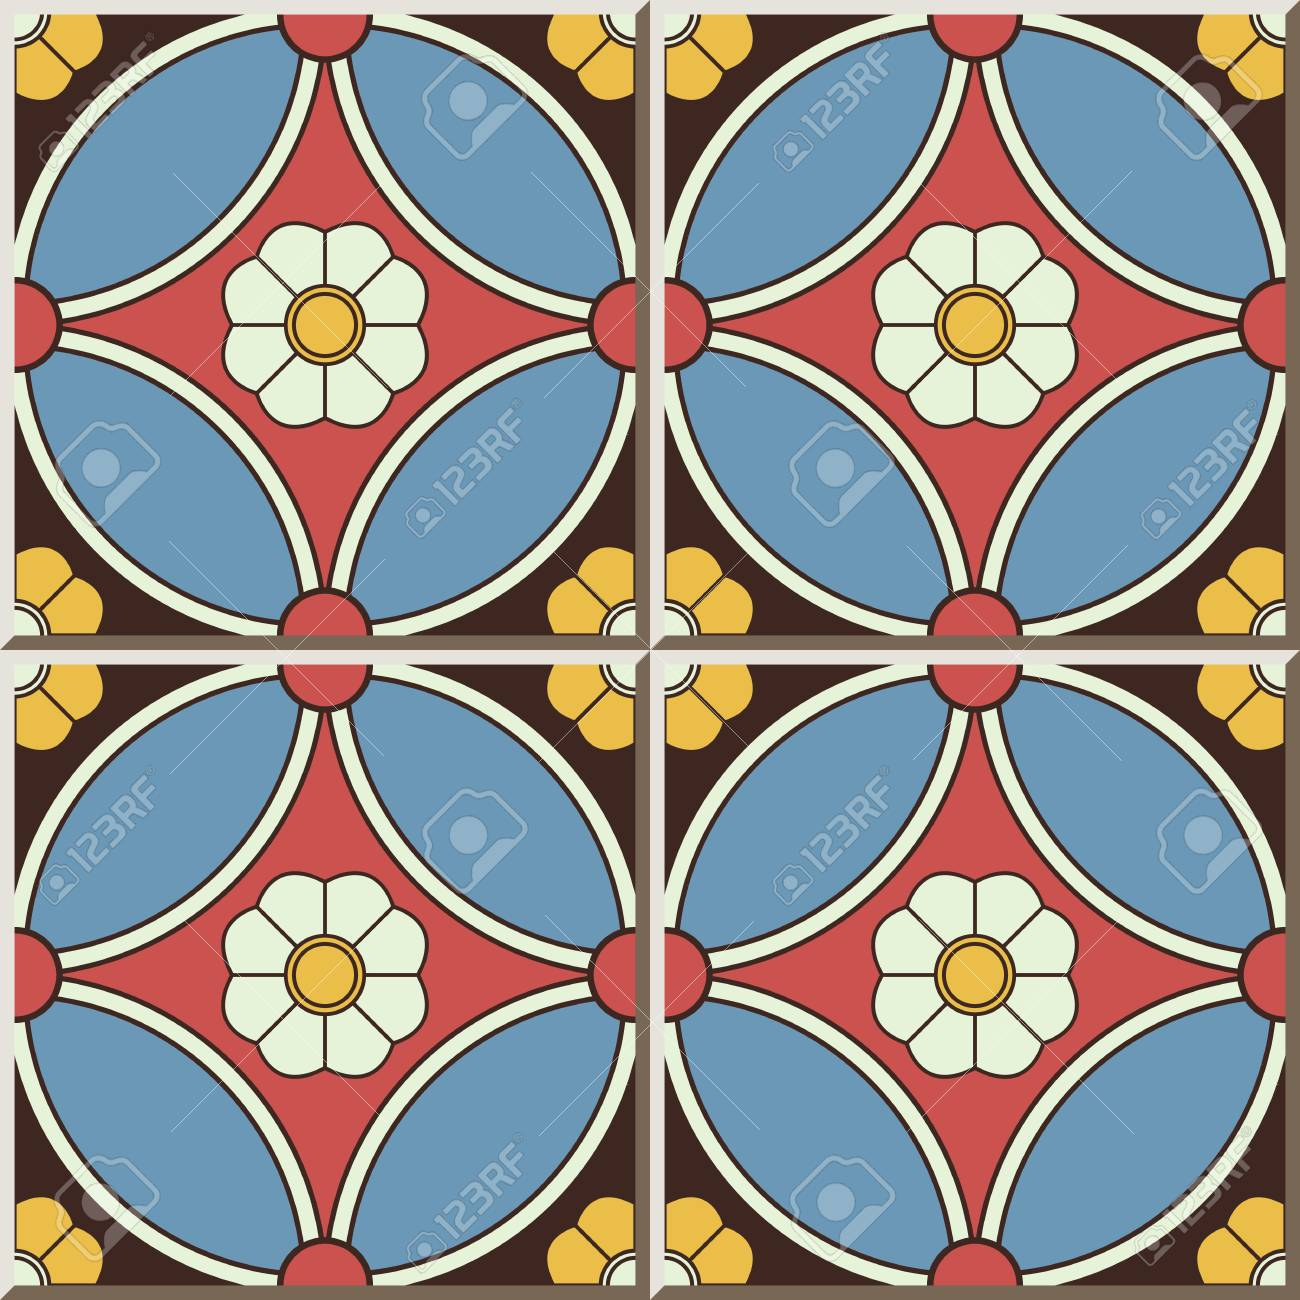 Ceramic Tile Pattern 431 Round Cross Frame Flower Royalty Free ...